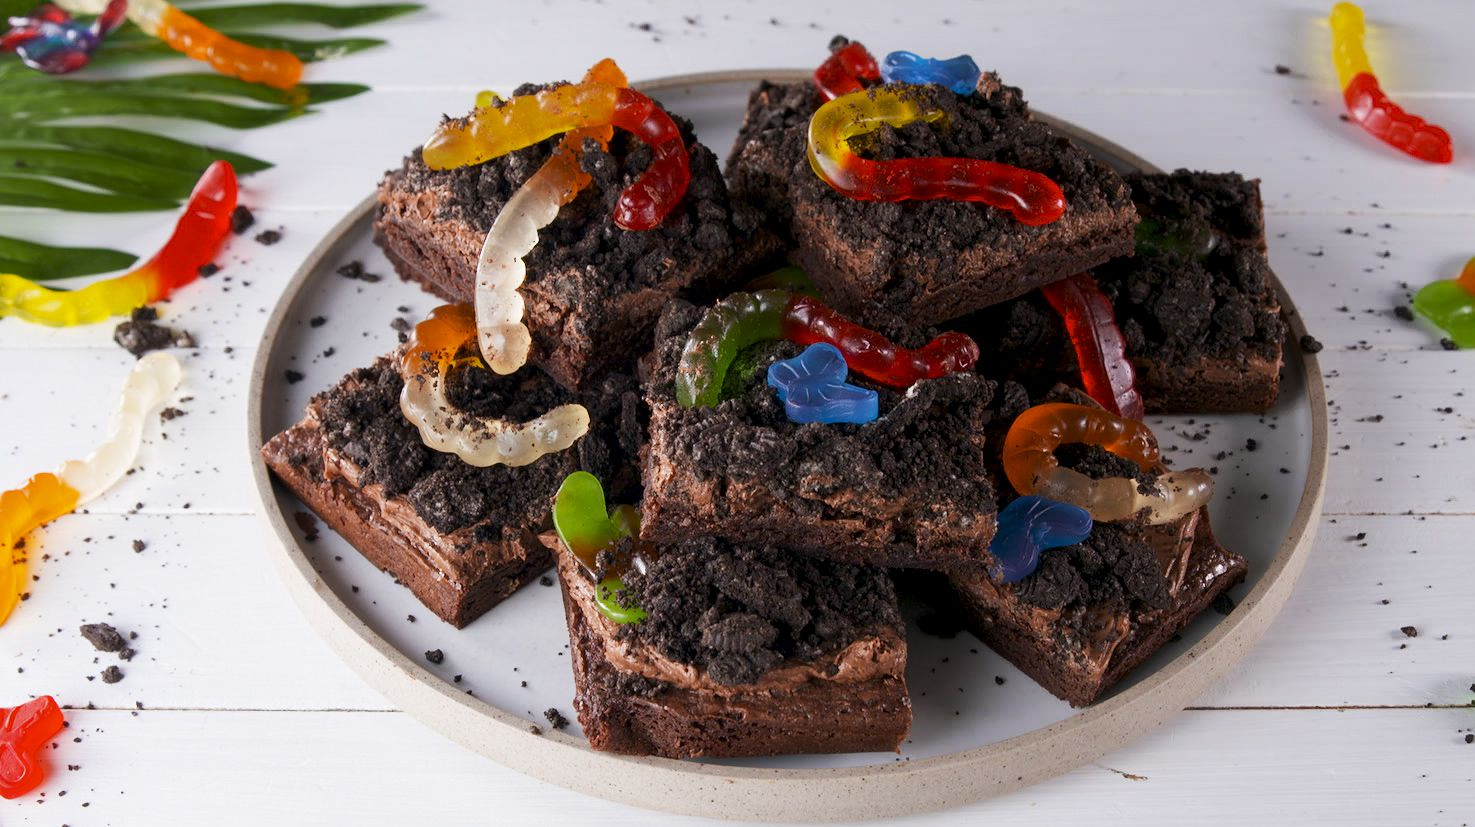 Timon and Pumba Would Go Wild For These Grub Brownies